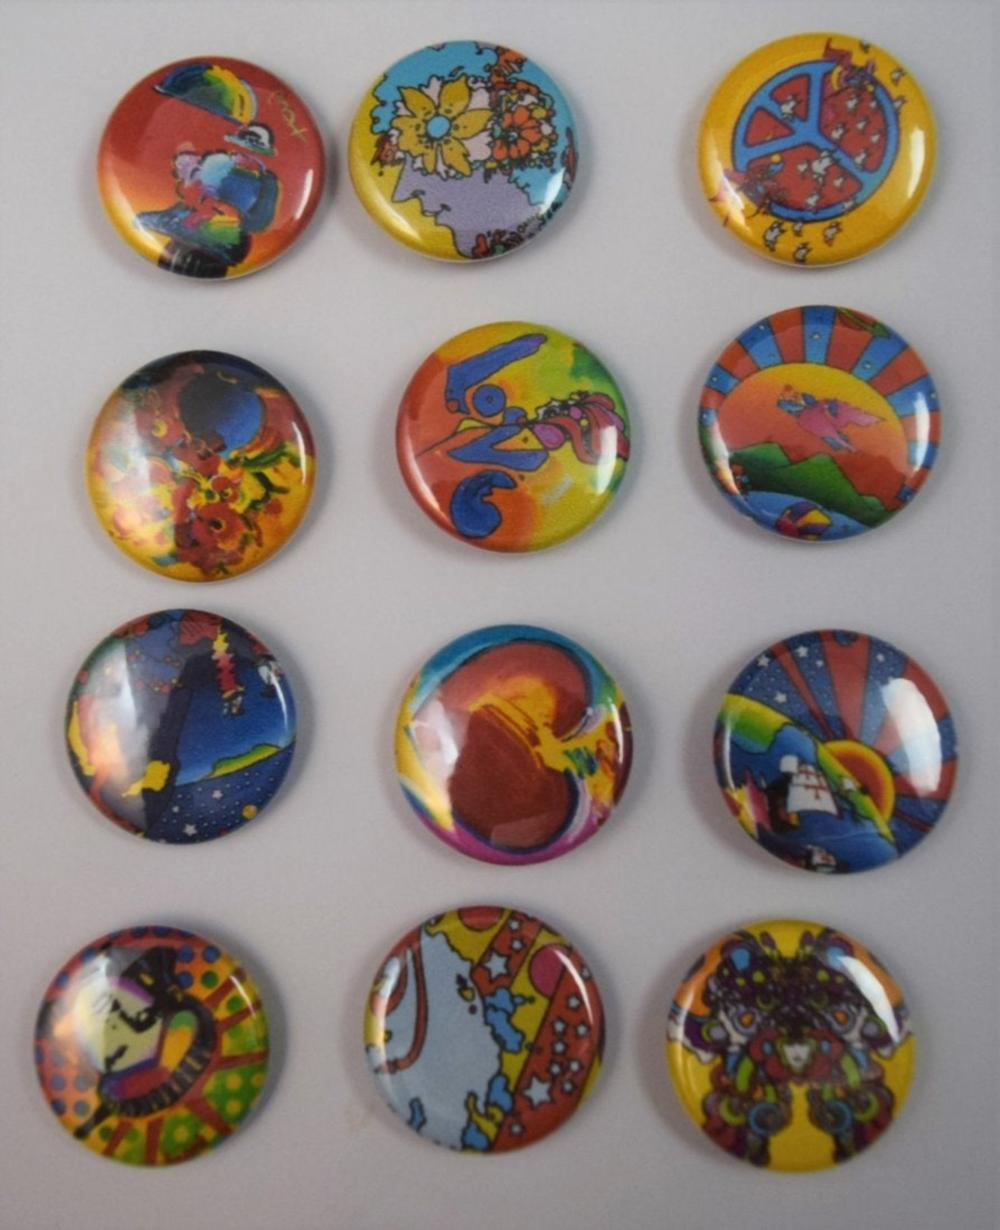 Peter Max (Vintage Buttons)